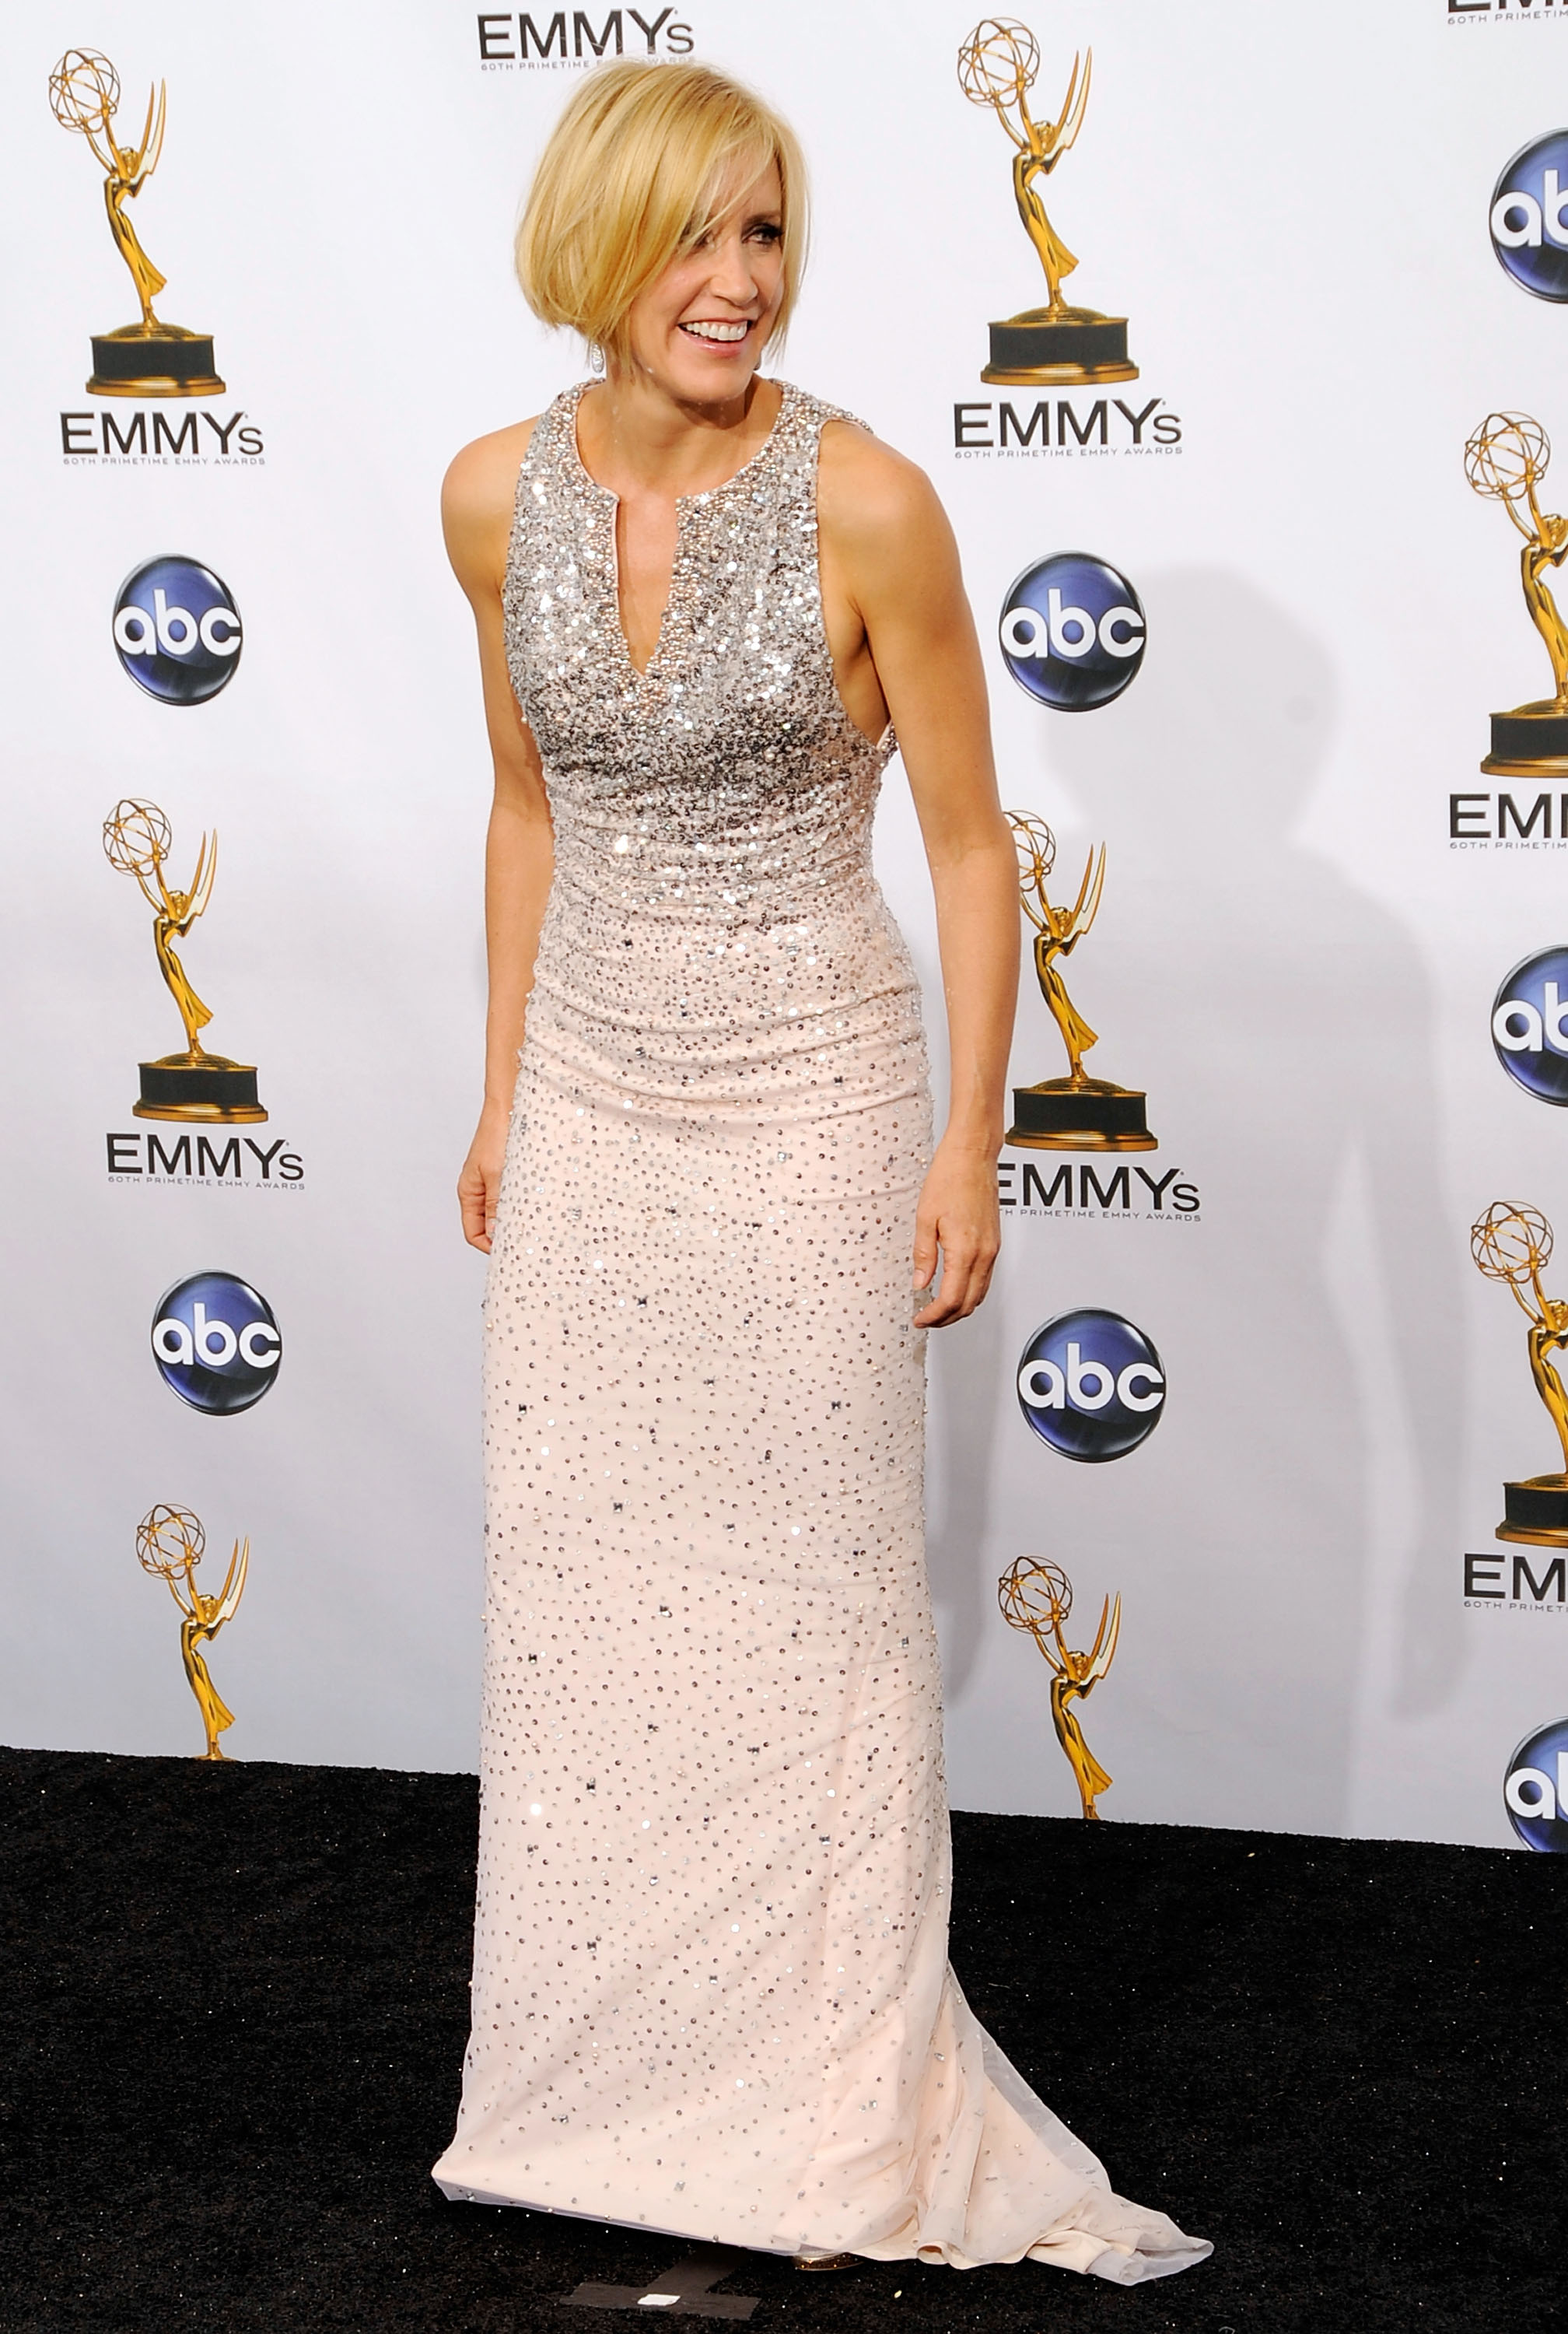 45491_Celebutopia-Felicity_Huffman-60th_Annual_Primetime_Emmy_Awards_Press_Room-05_122_1139lo.jpg